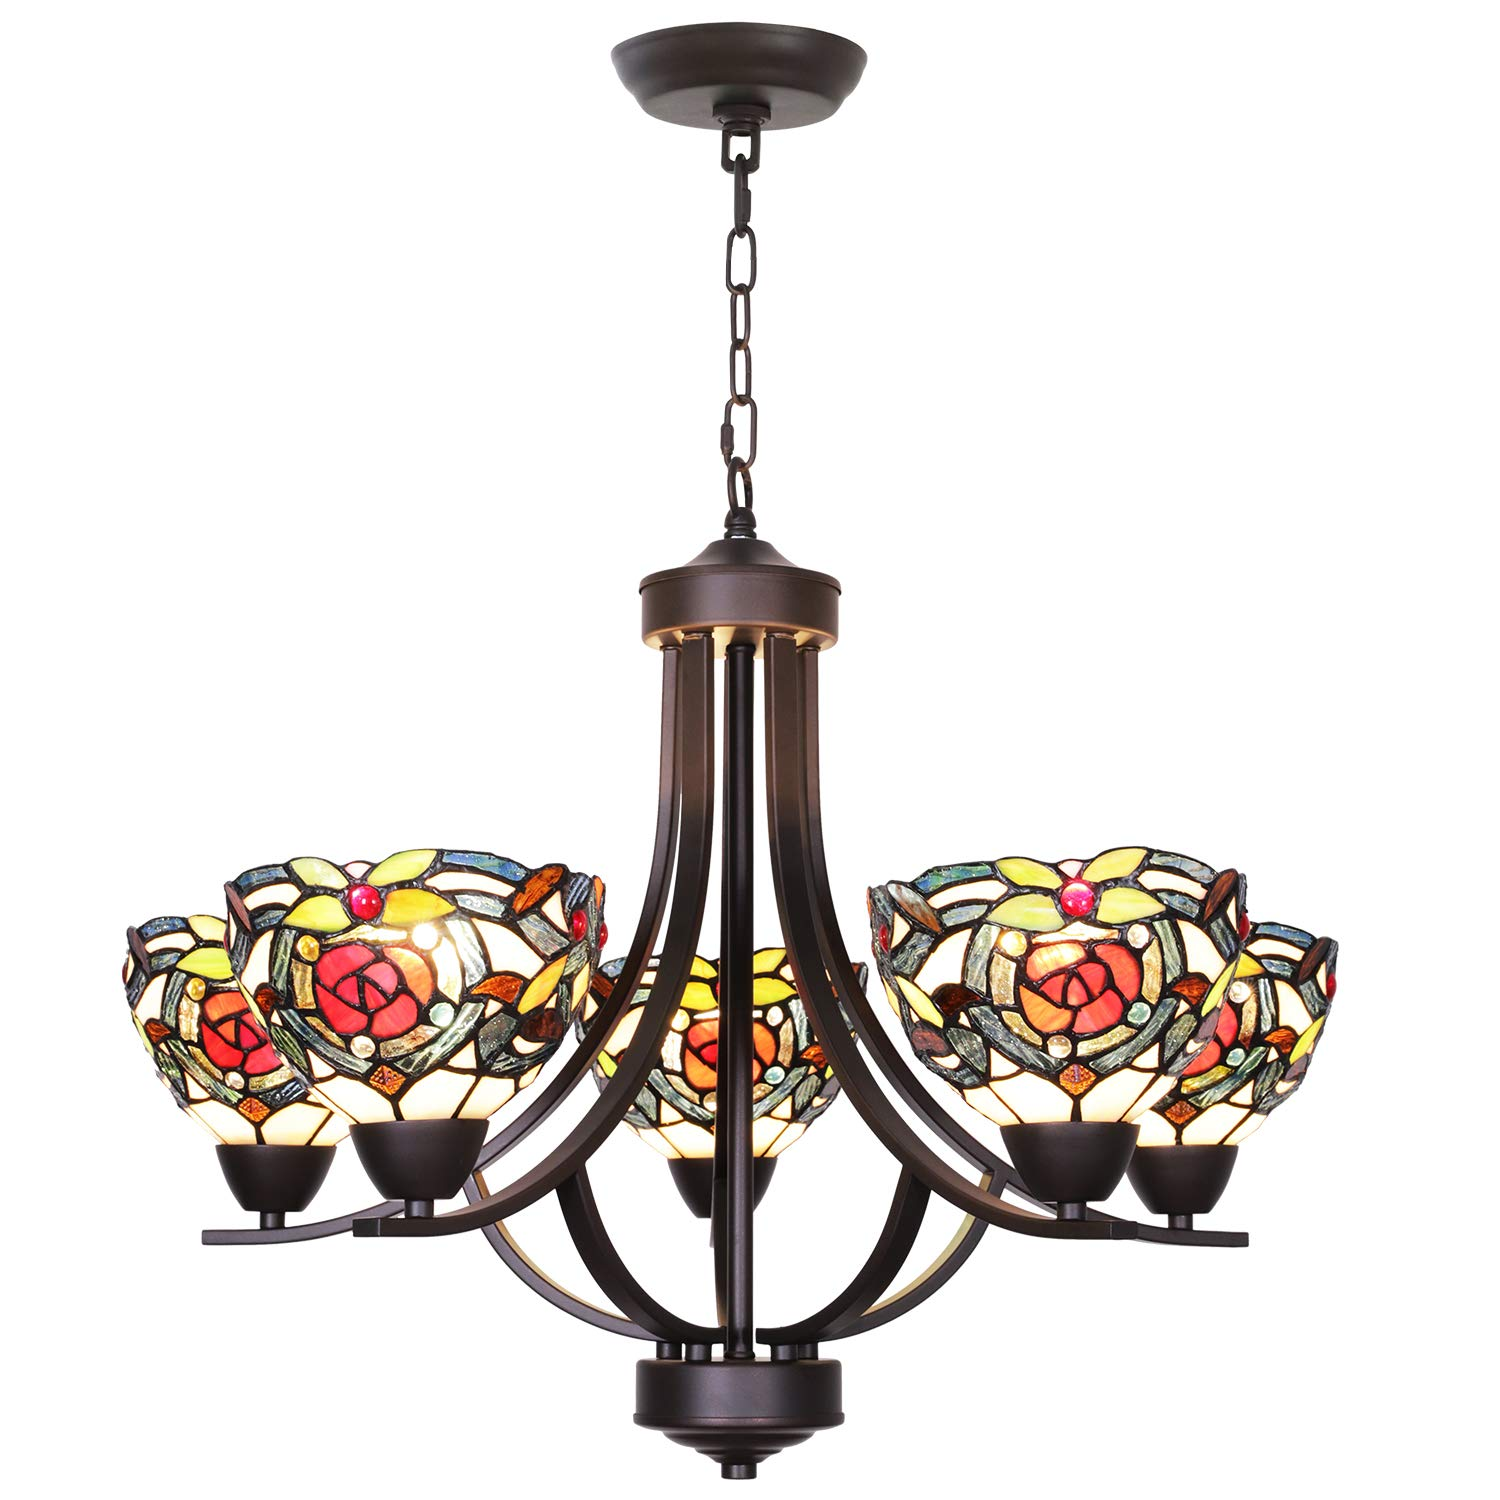 VINLUZ 3 Light Shaded Contemporary Chandeliers with Alabaster Glass Black Rustic Light Fixtures Ceiling Hanging Mid Century Modern Pendant Lighting for Bed Room Dining Room Foyer Living Room